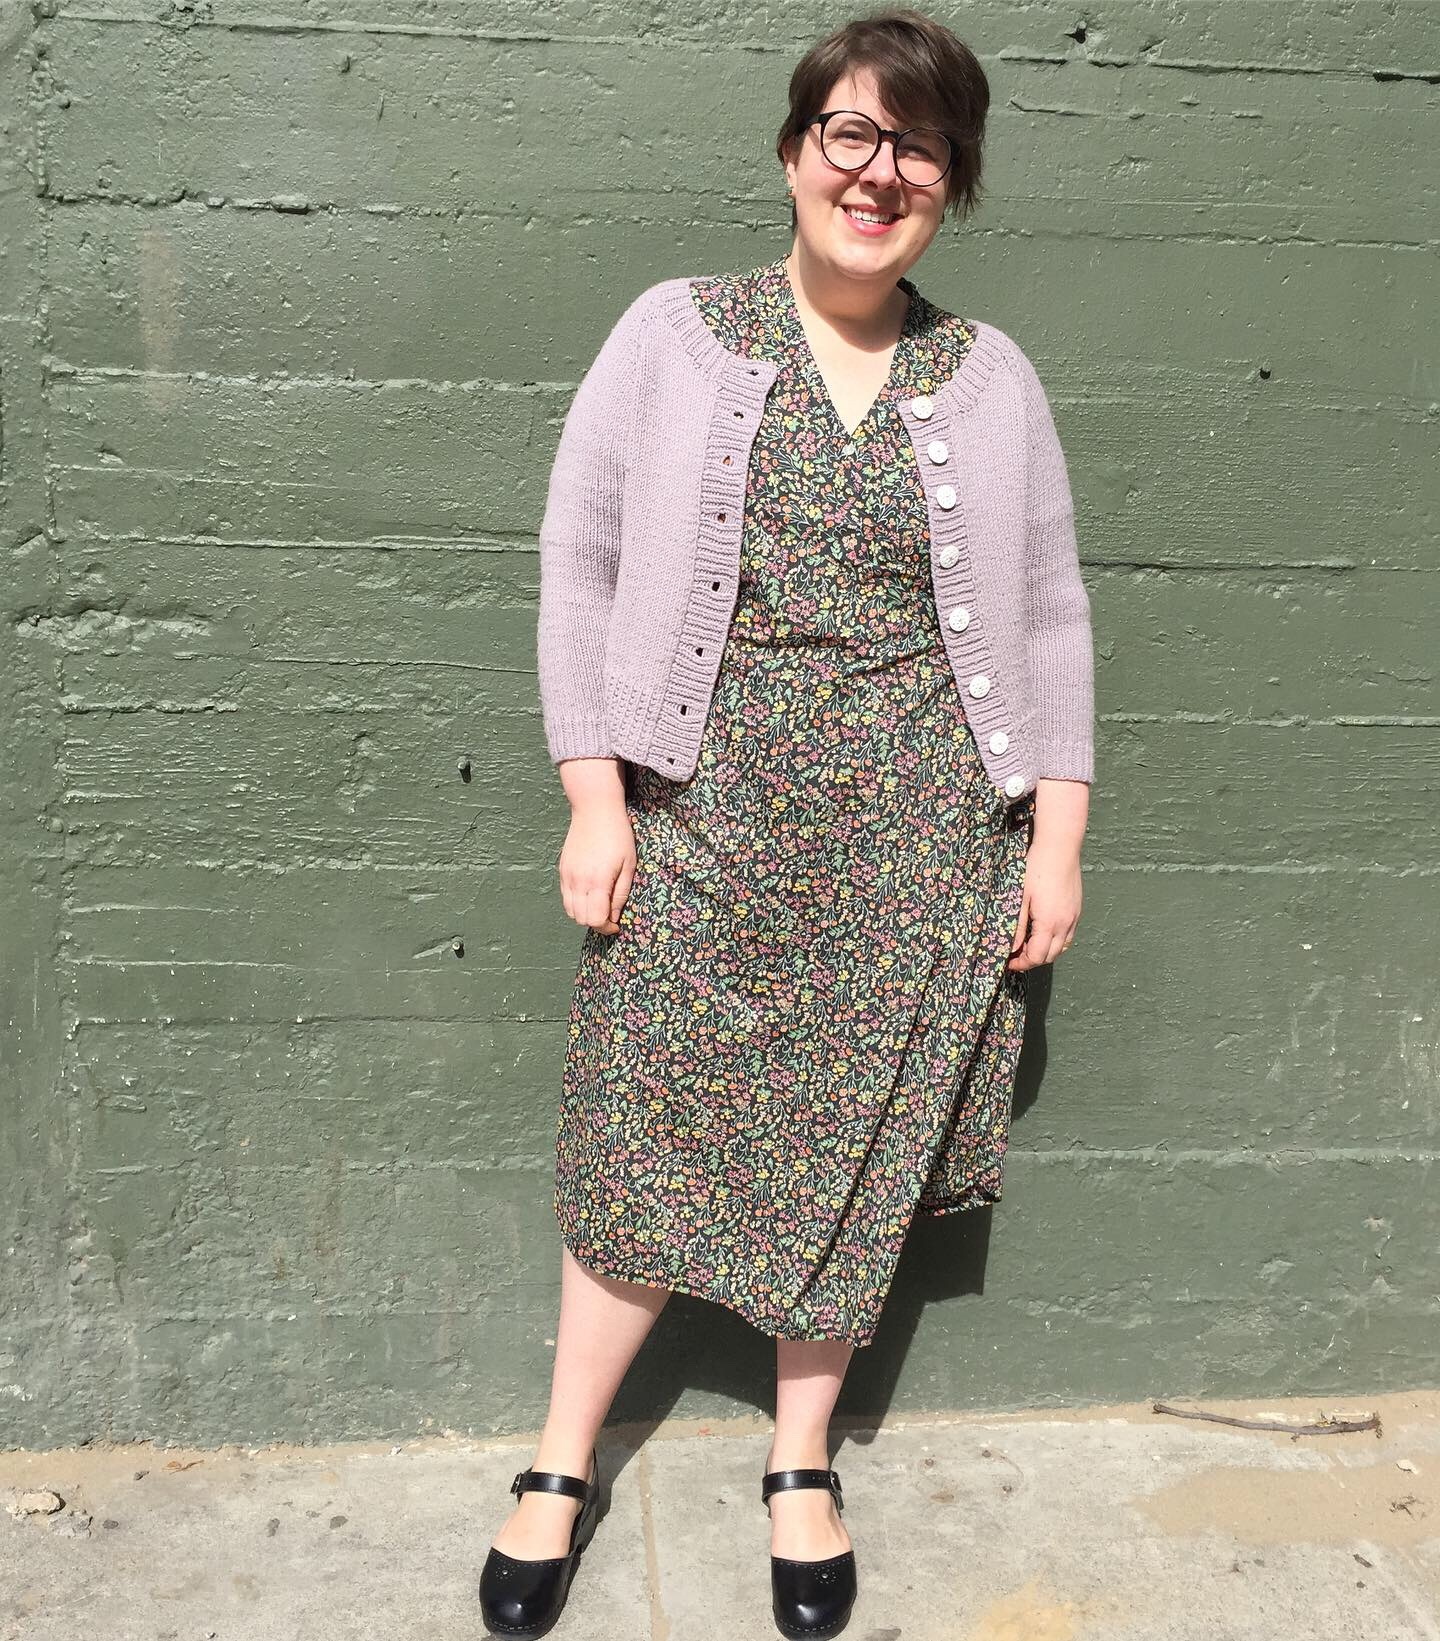 May 23: Isca Wrap Dress in Liberty Tana Lawn & Ramona Cardigan